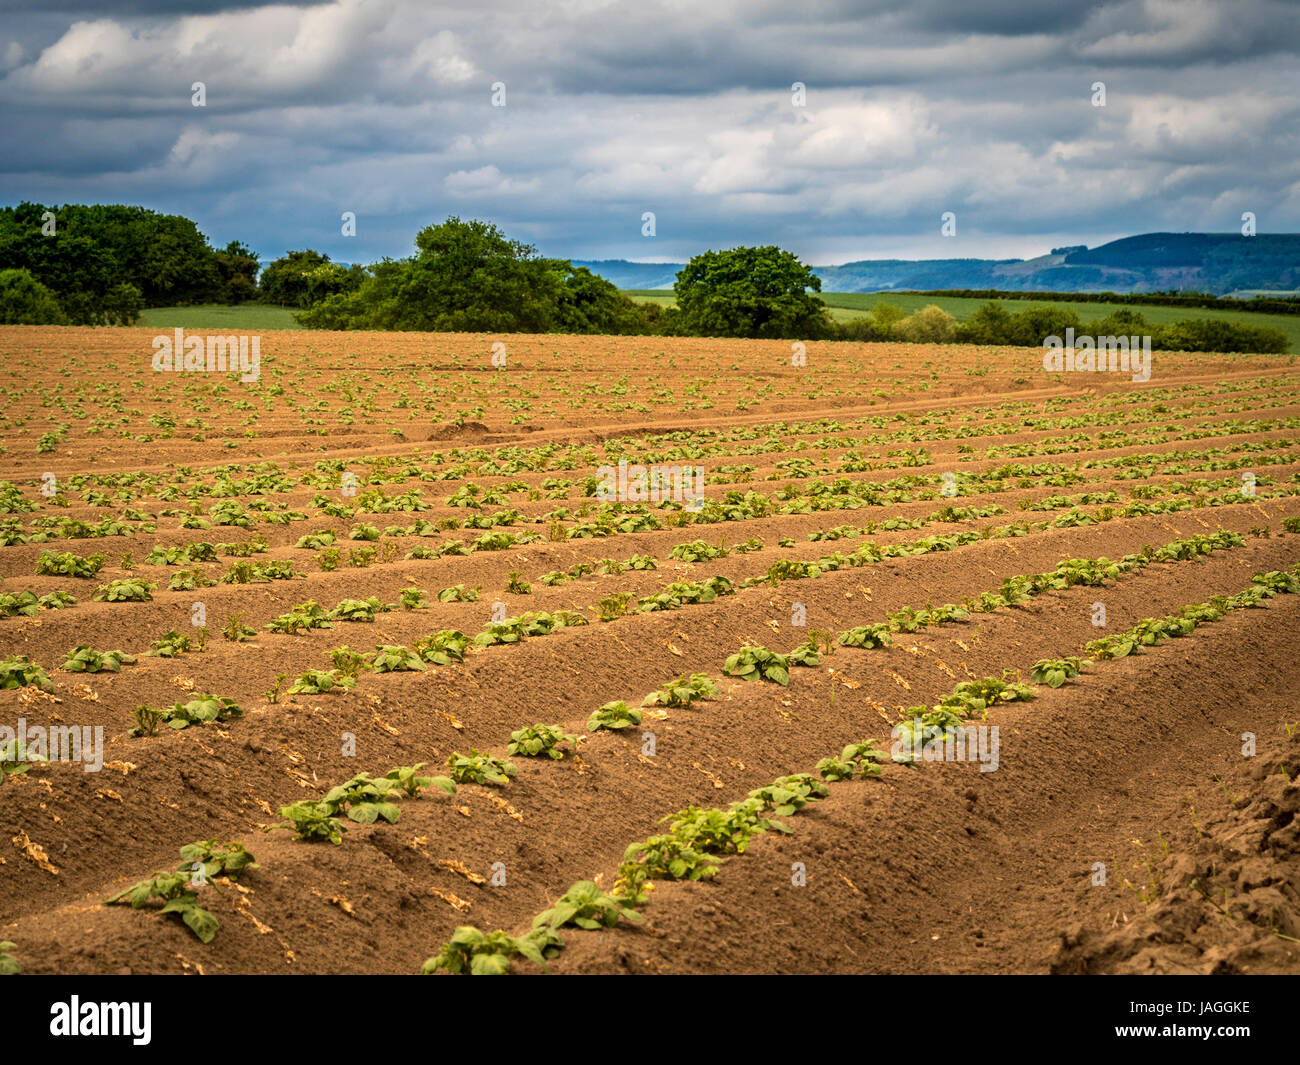 Potato plants growing in field, North Yorkshire, UK. - Stock Image